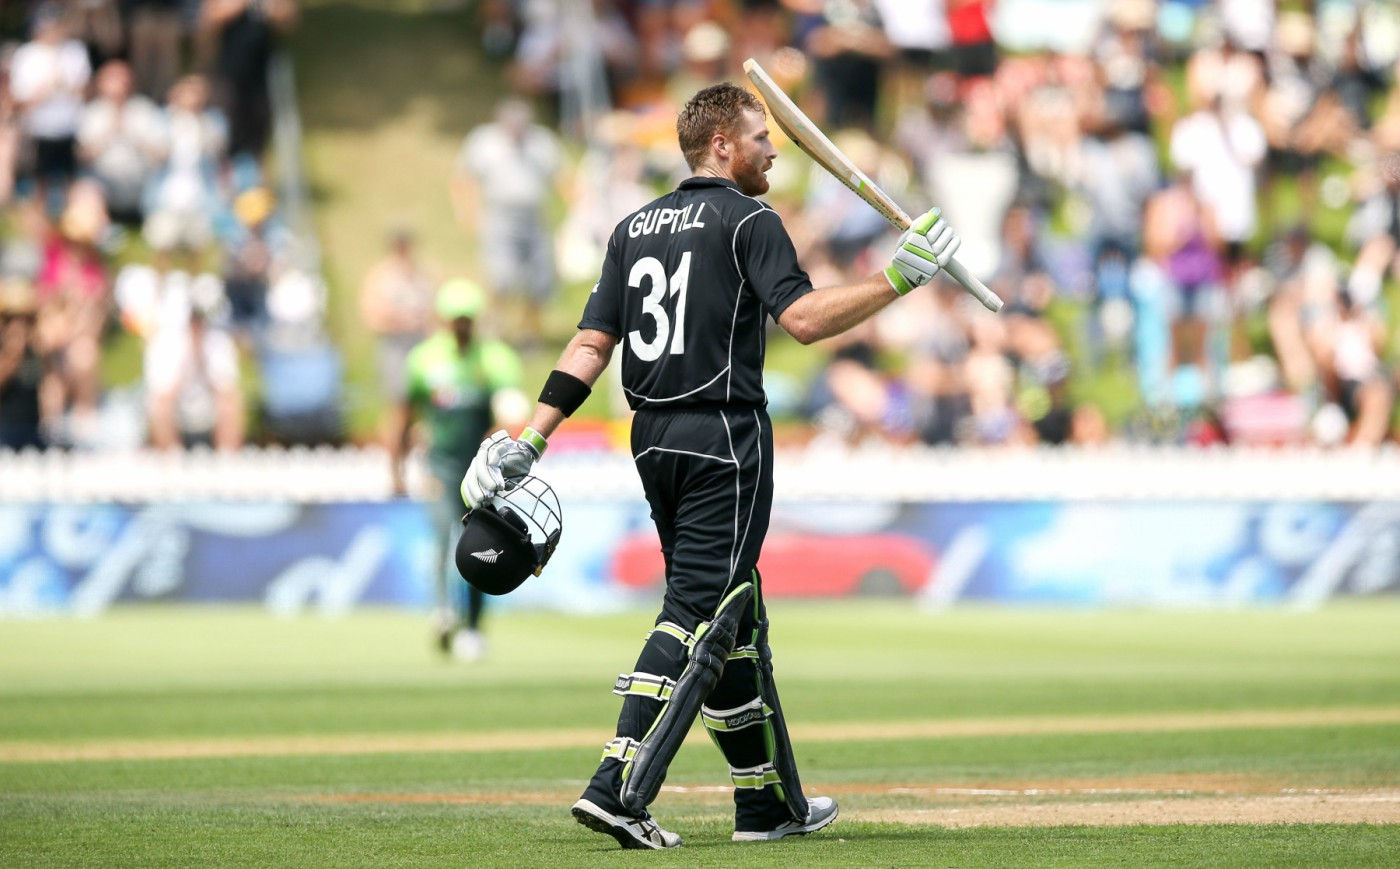 Pakistan suffer humiliating whitewash as New Zealand seal victory in final ODI at Wellington